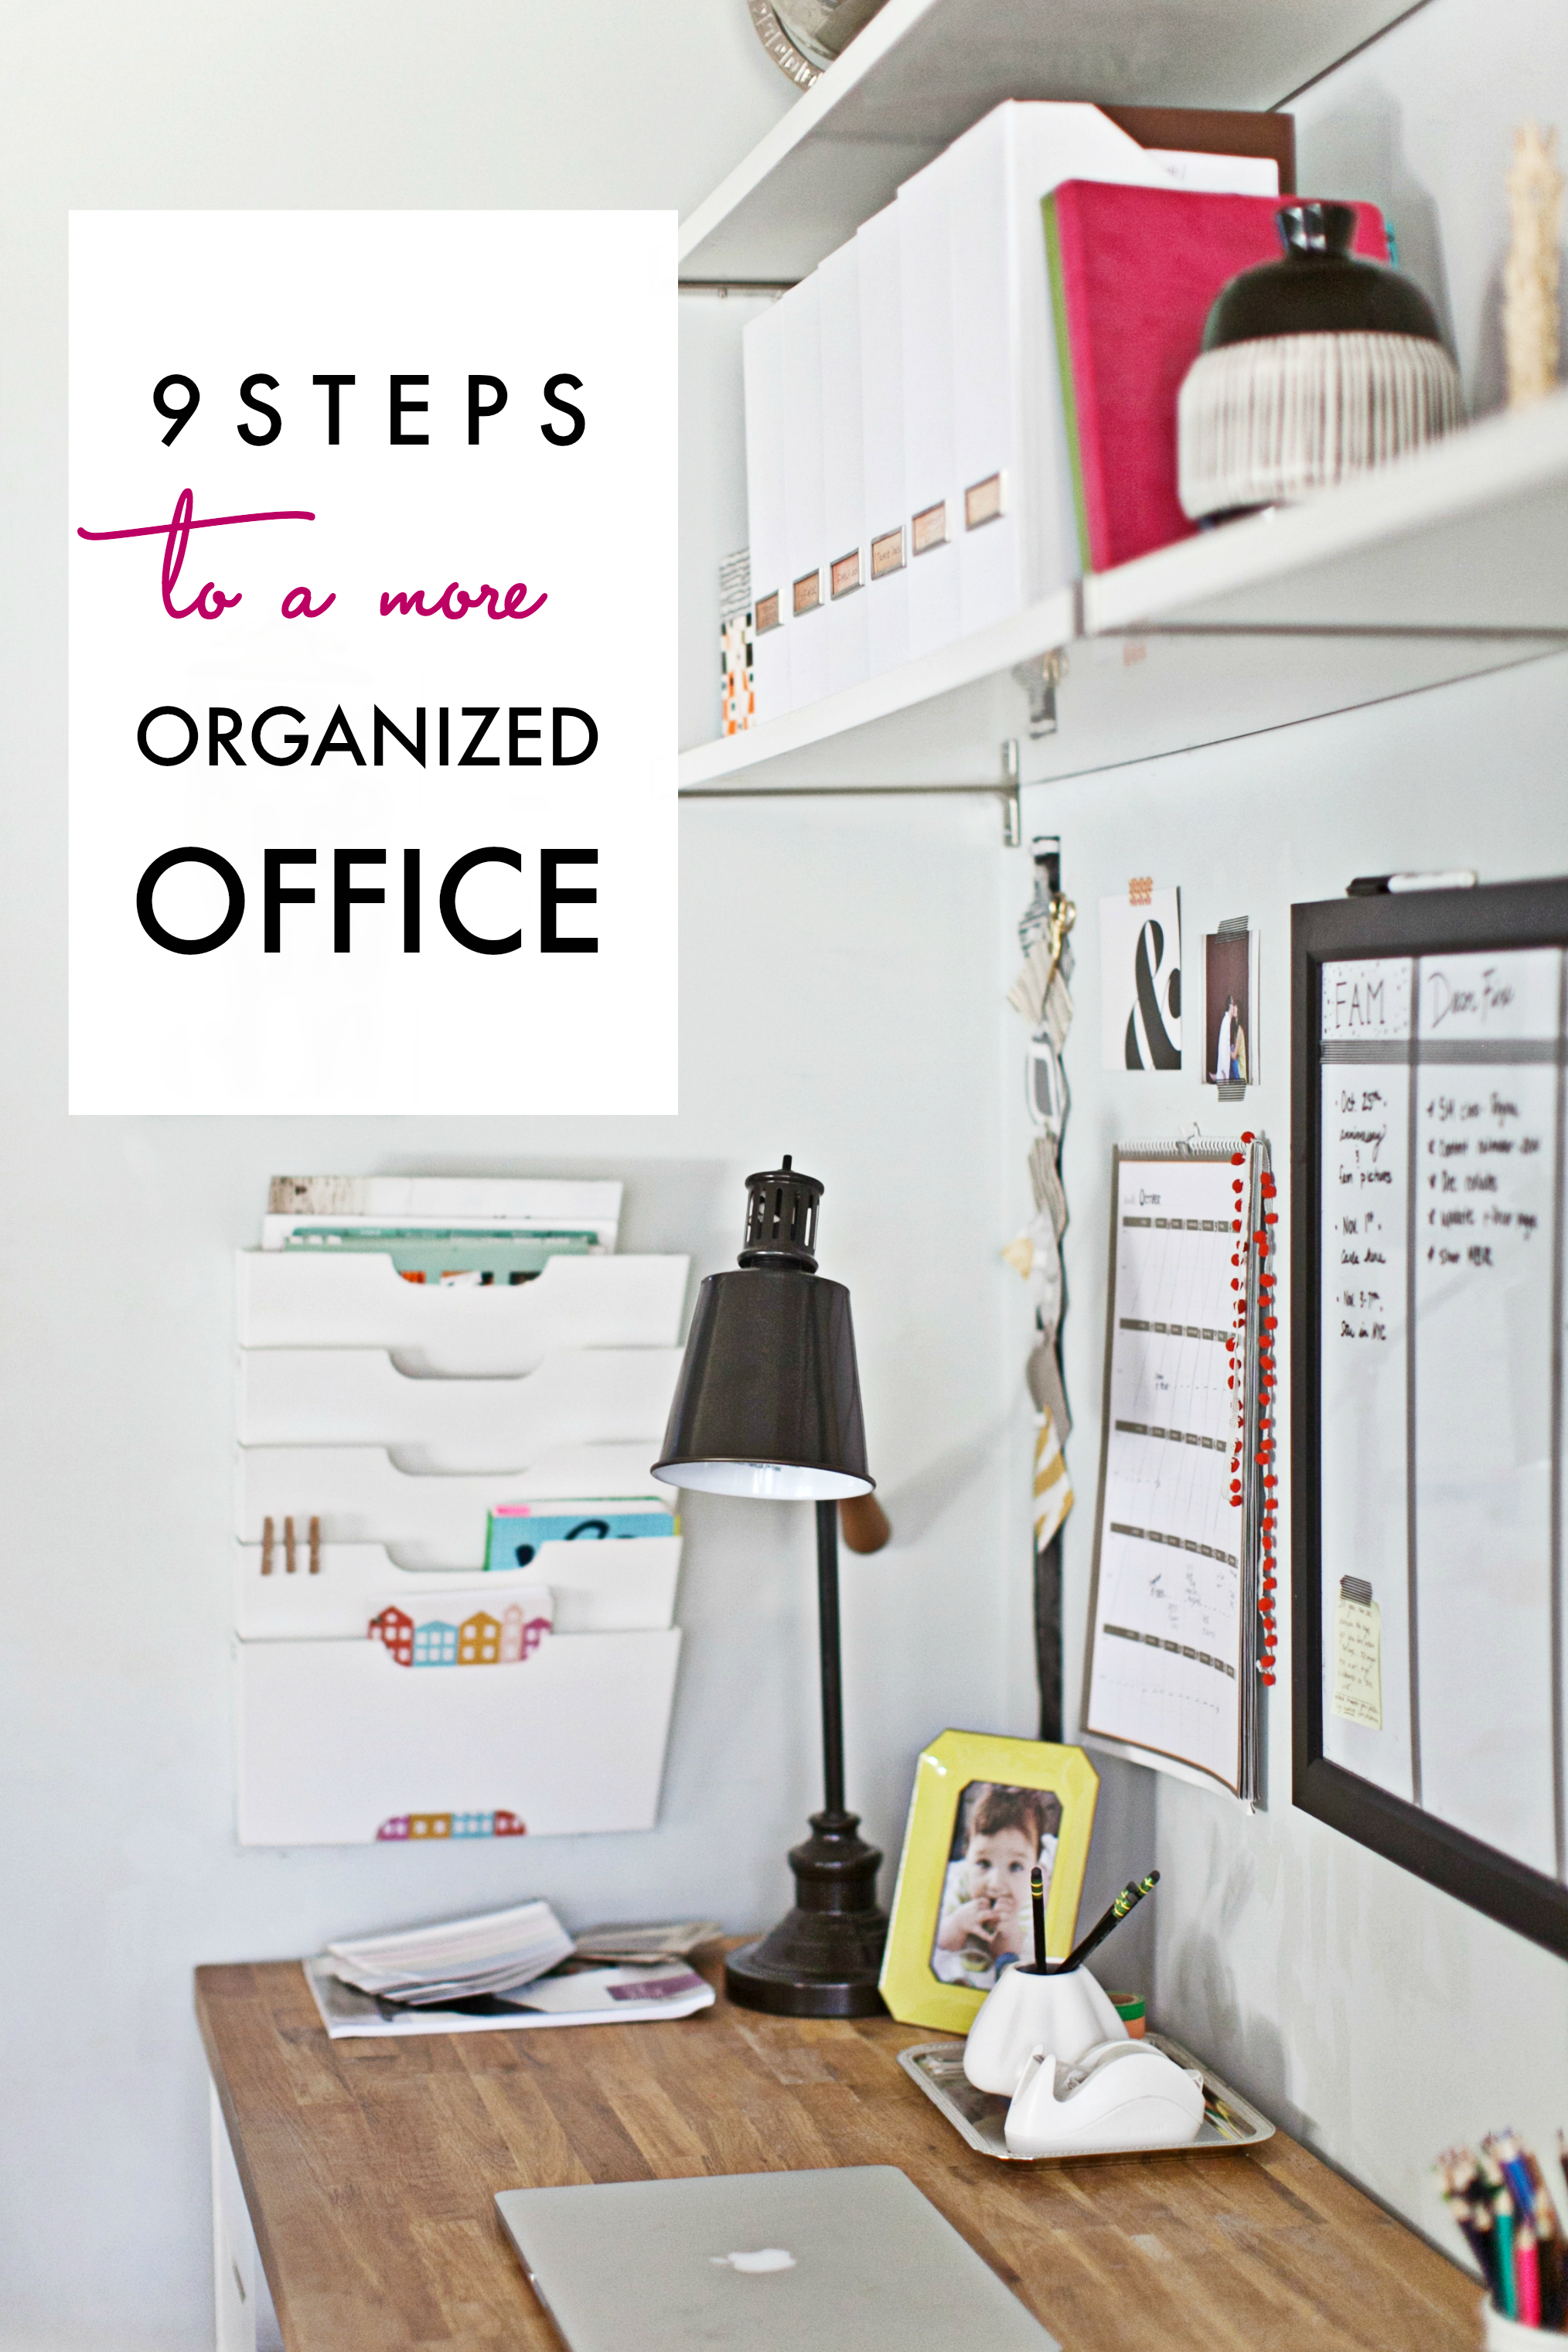 Pin by Kay on Adult adhd & Organizing | Pinterest | Organizations ...